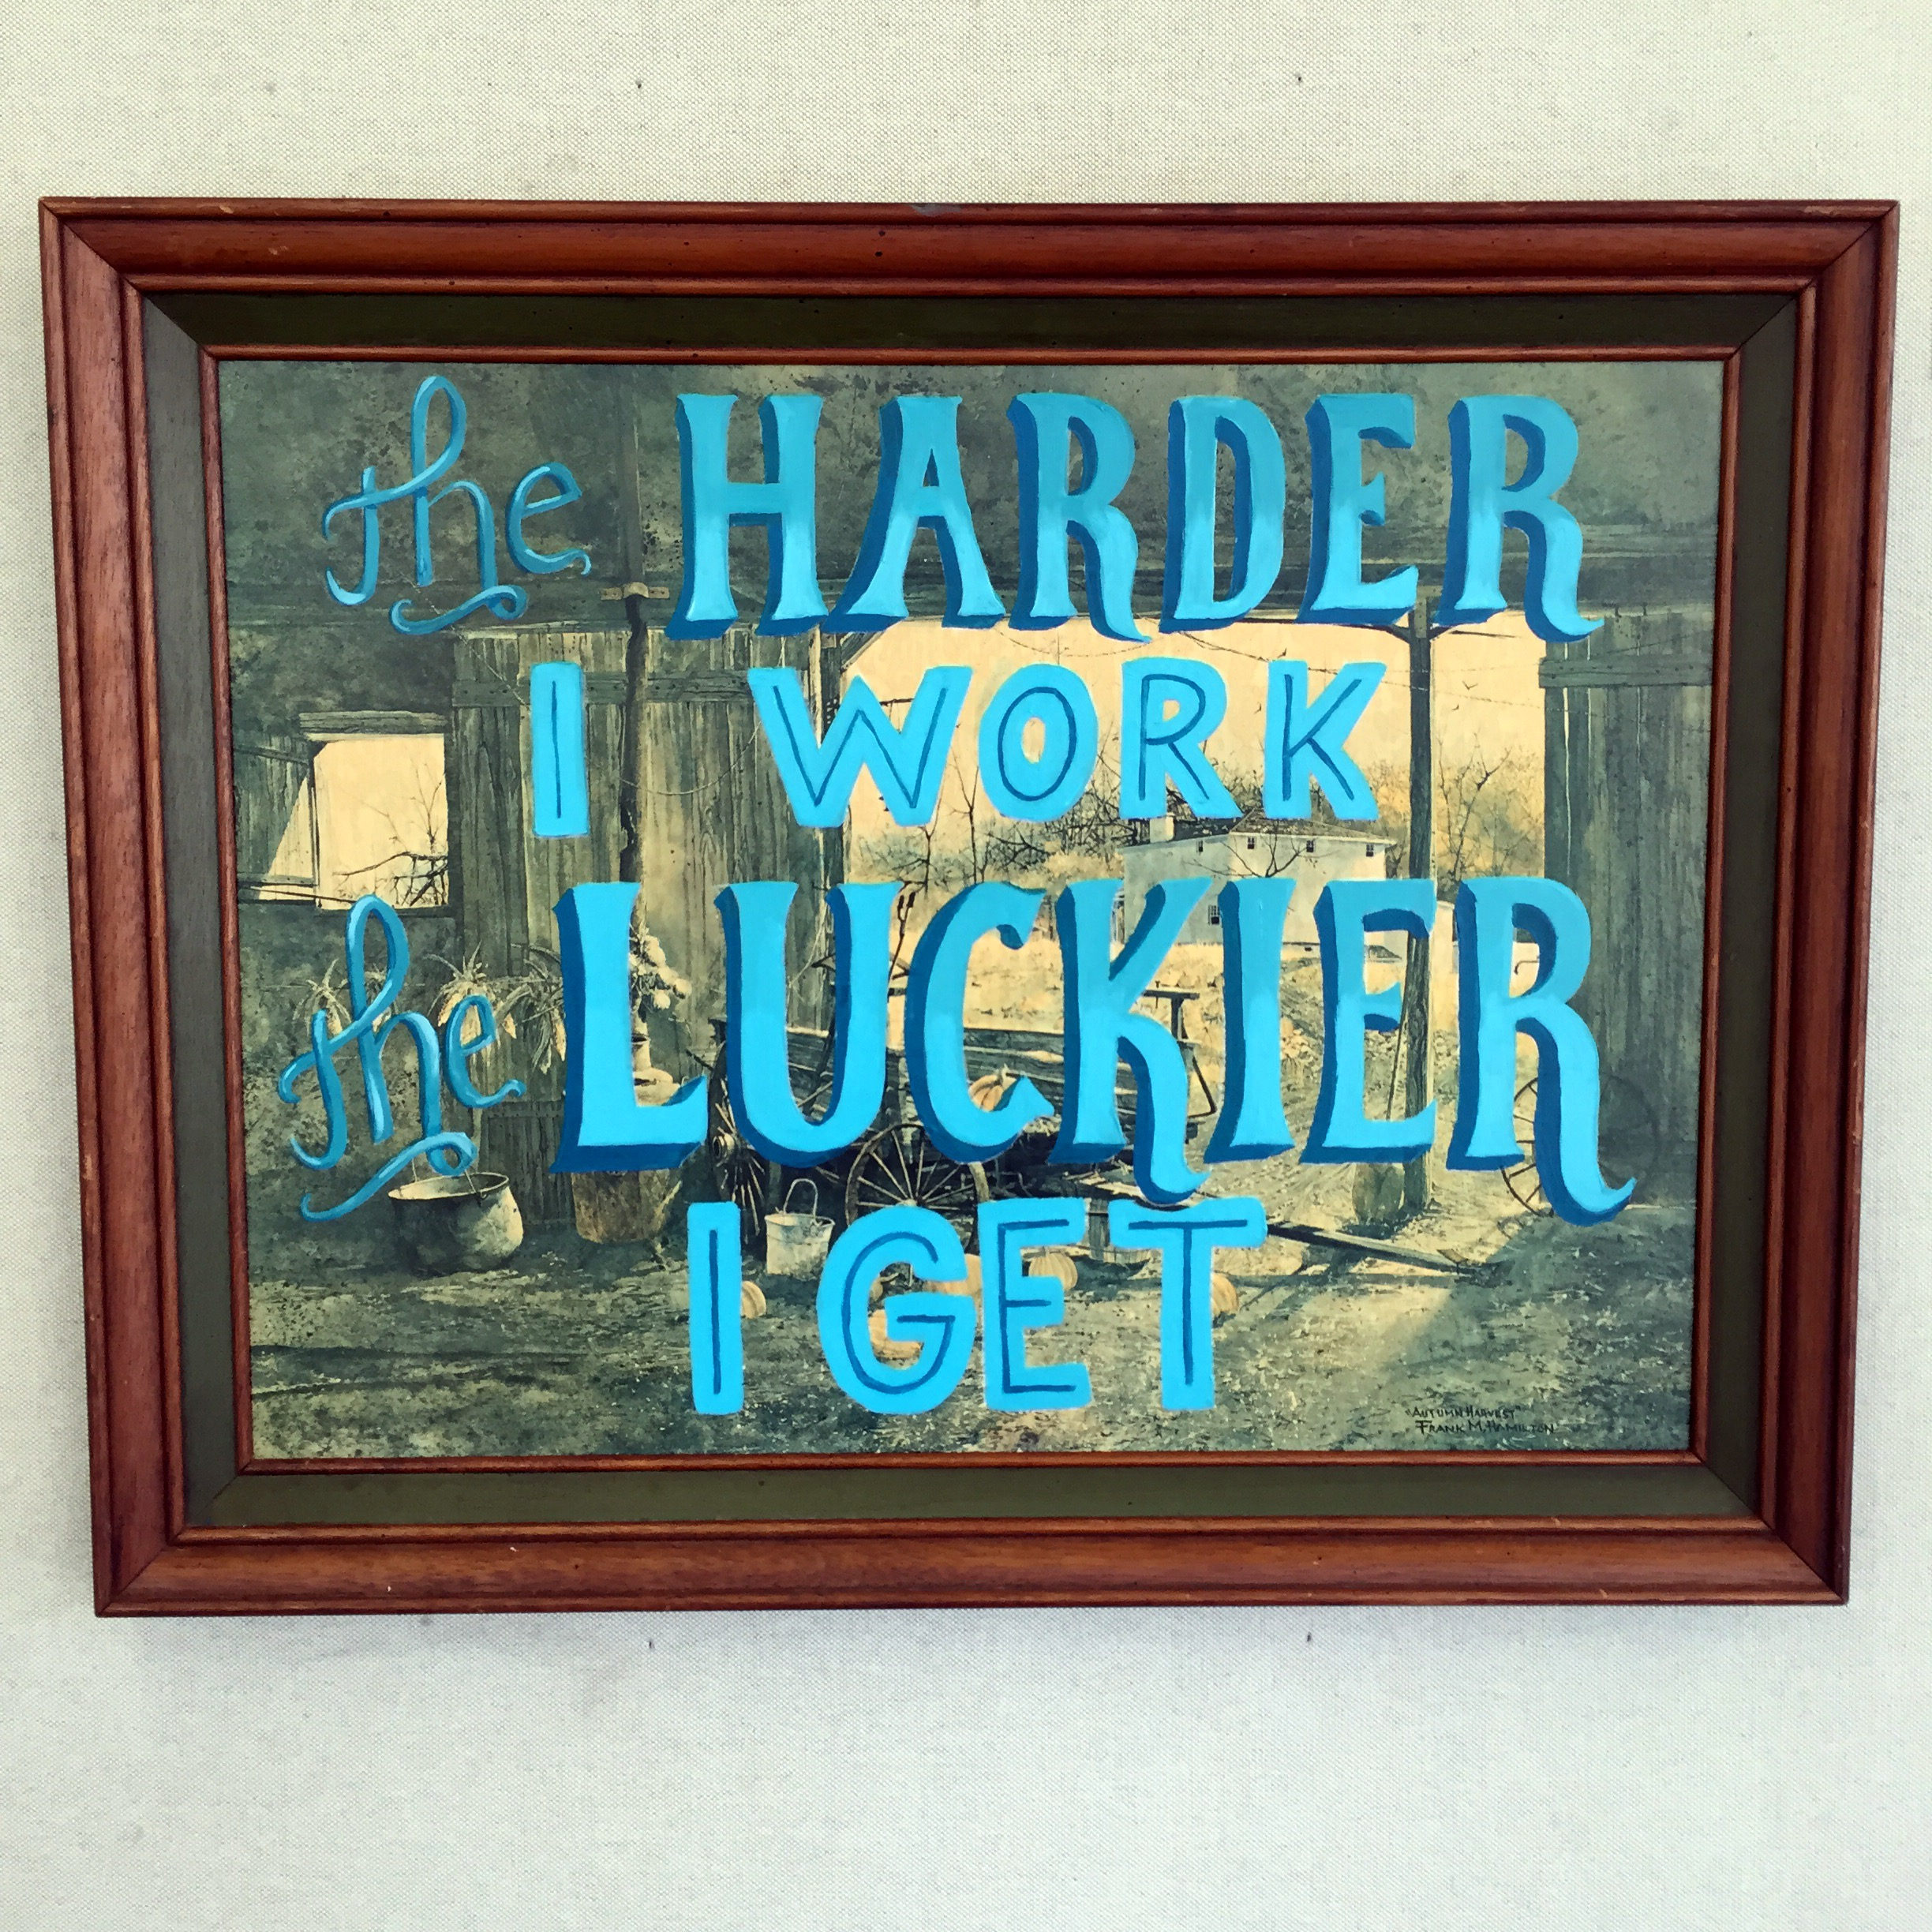 'The Harder I Work' Acrylic paint on repurposed canvas